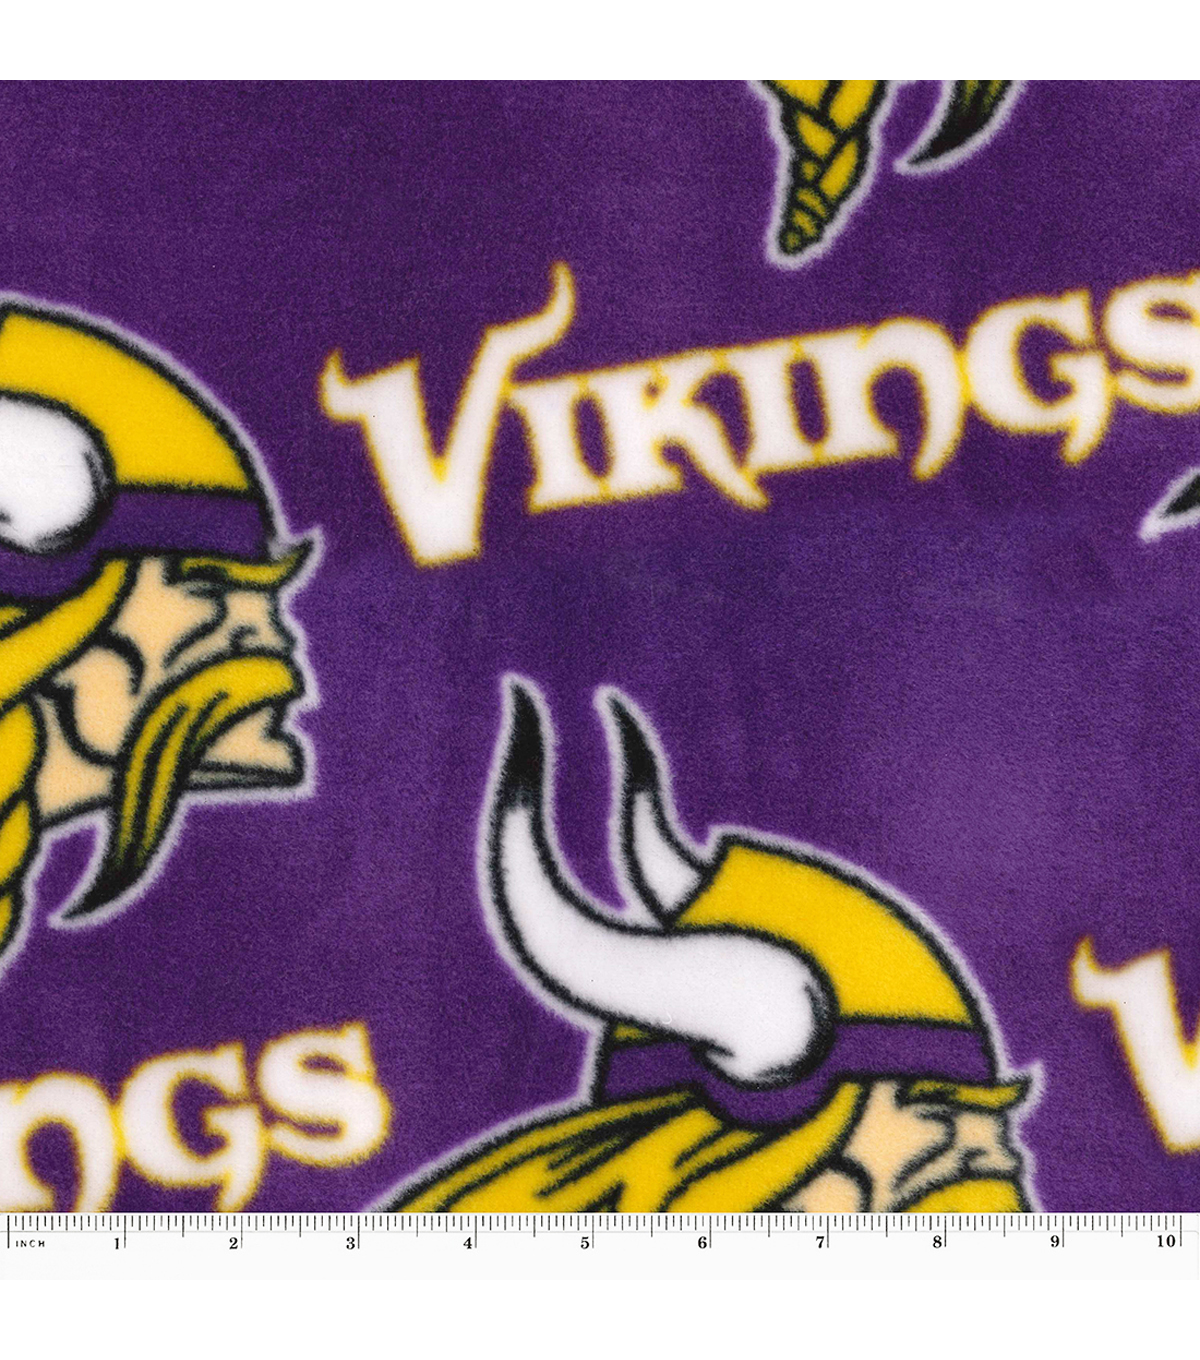 55a9a11b Minnesota Vikings Fleece Fabric -Tossed